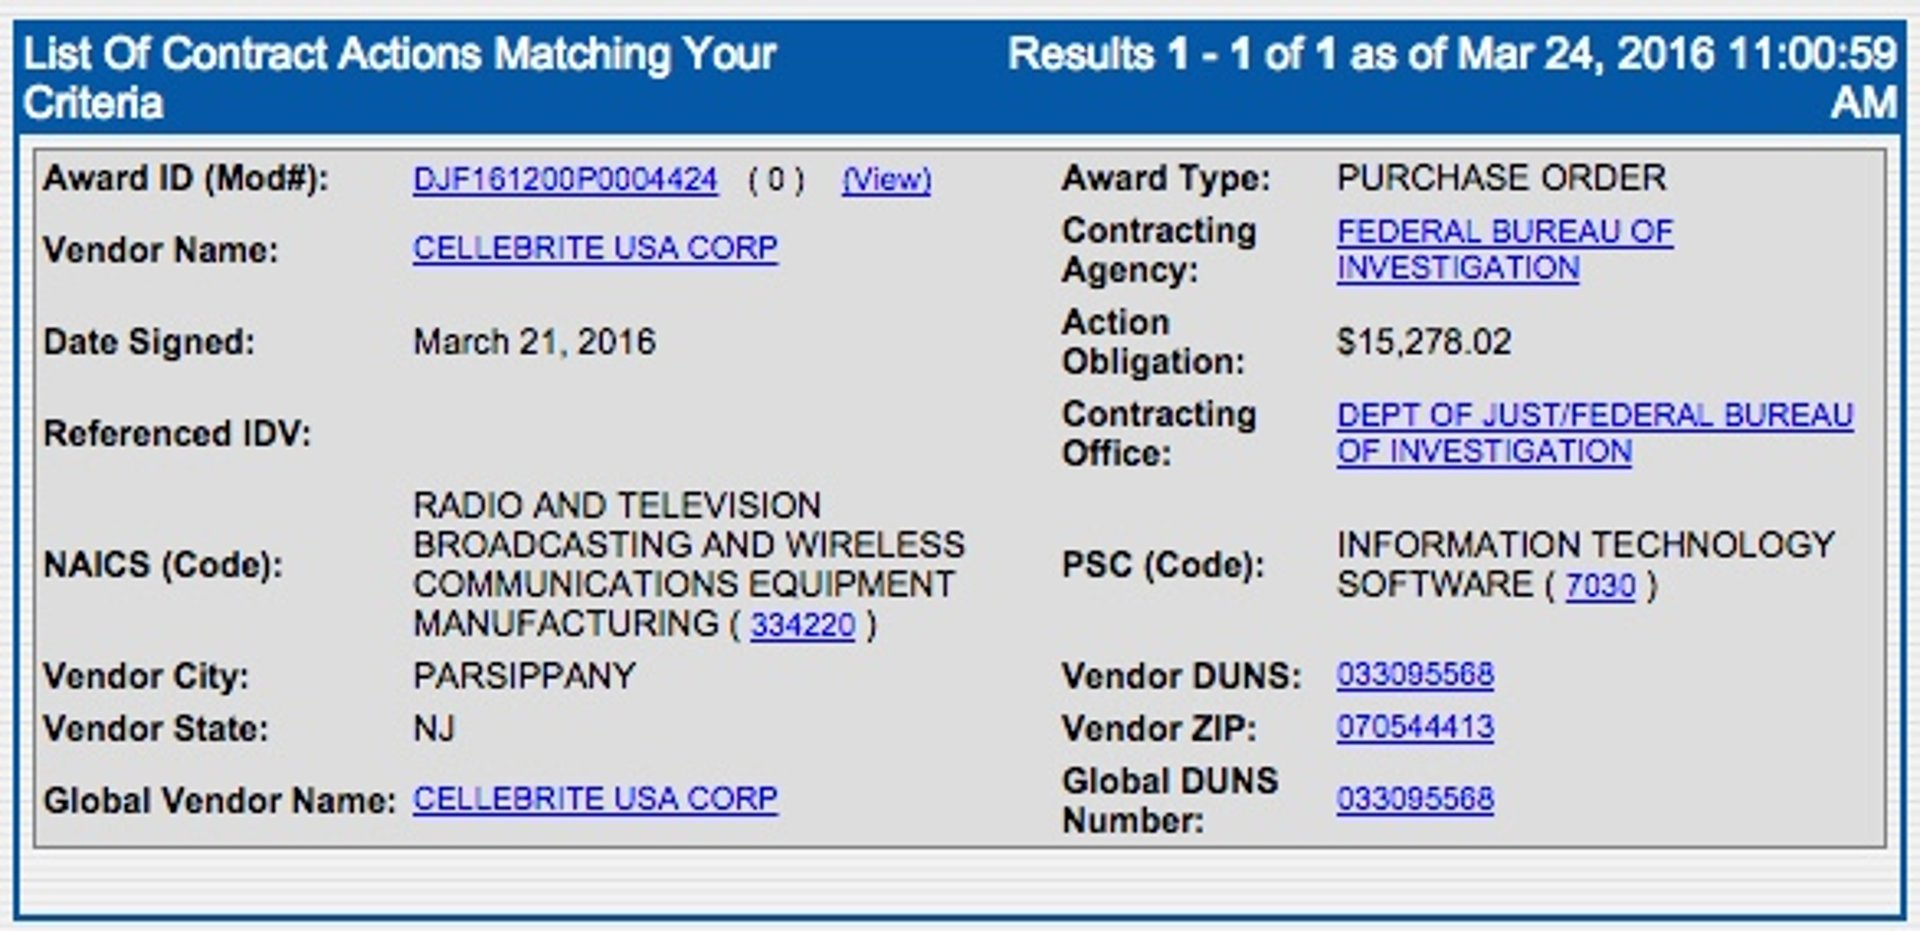 FBI - Cellebrite Contract